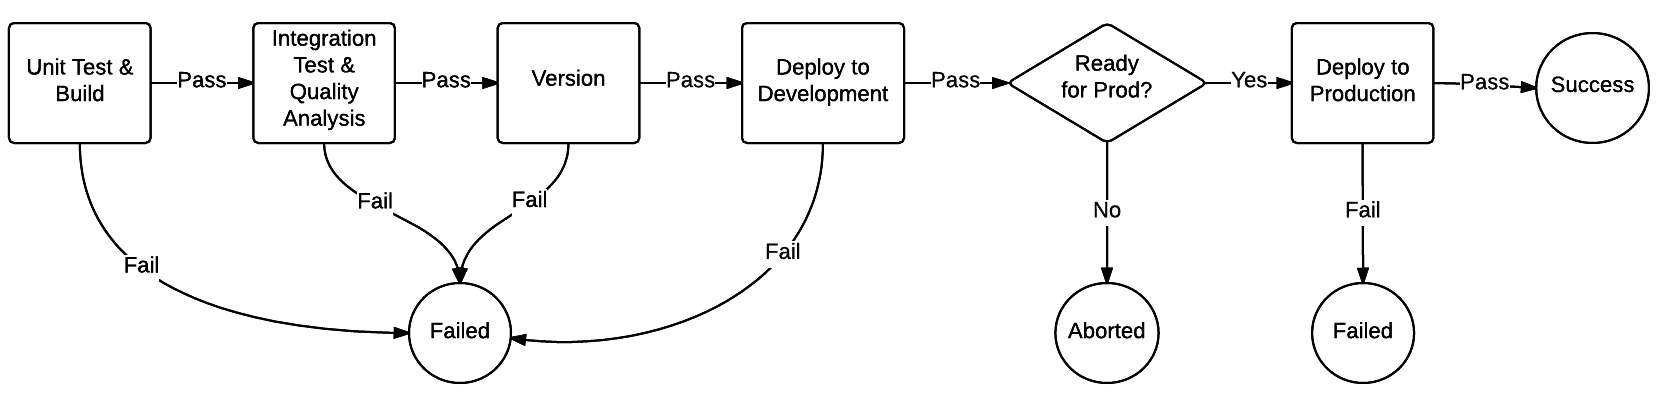 Figure 1 - Deployment Pipeline Stages